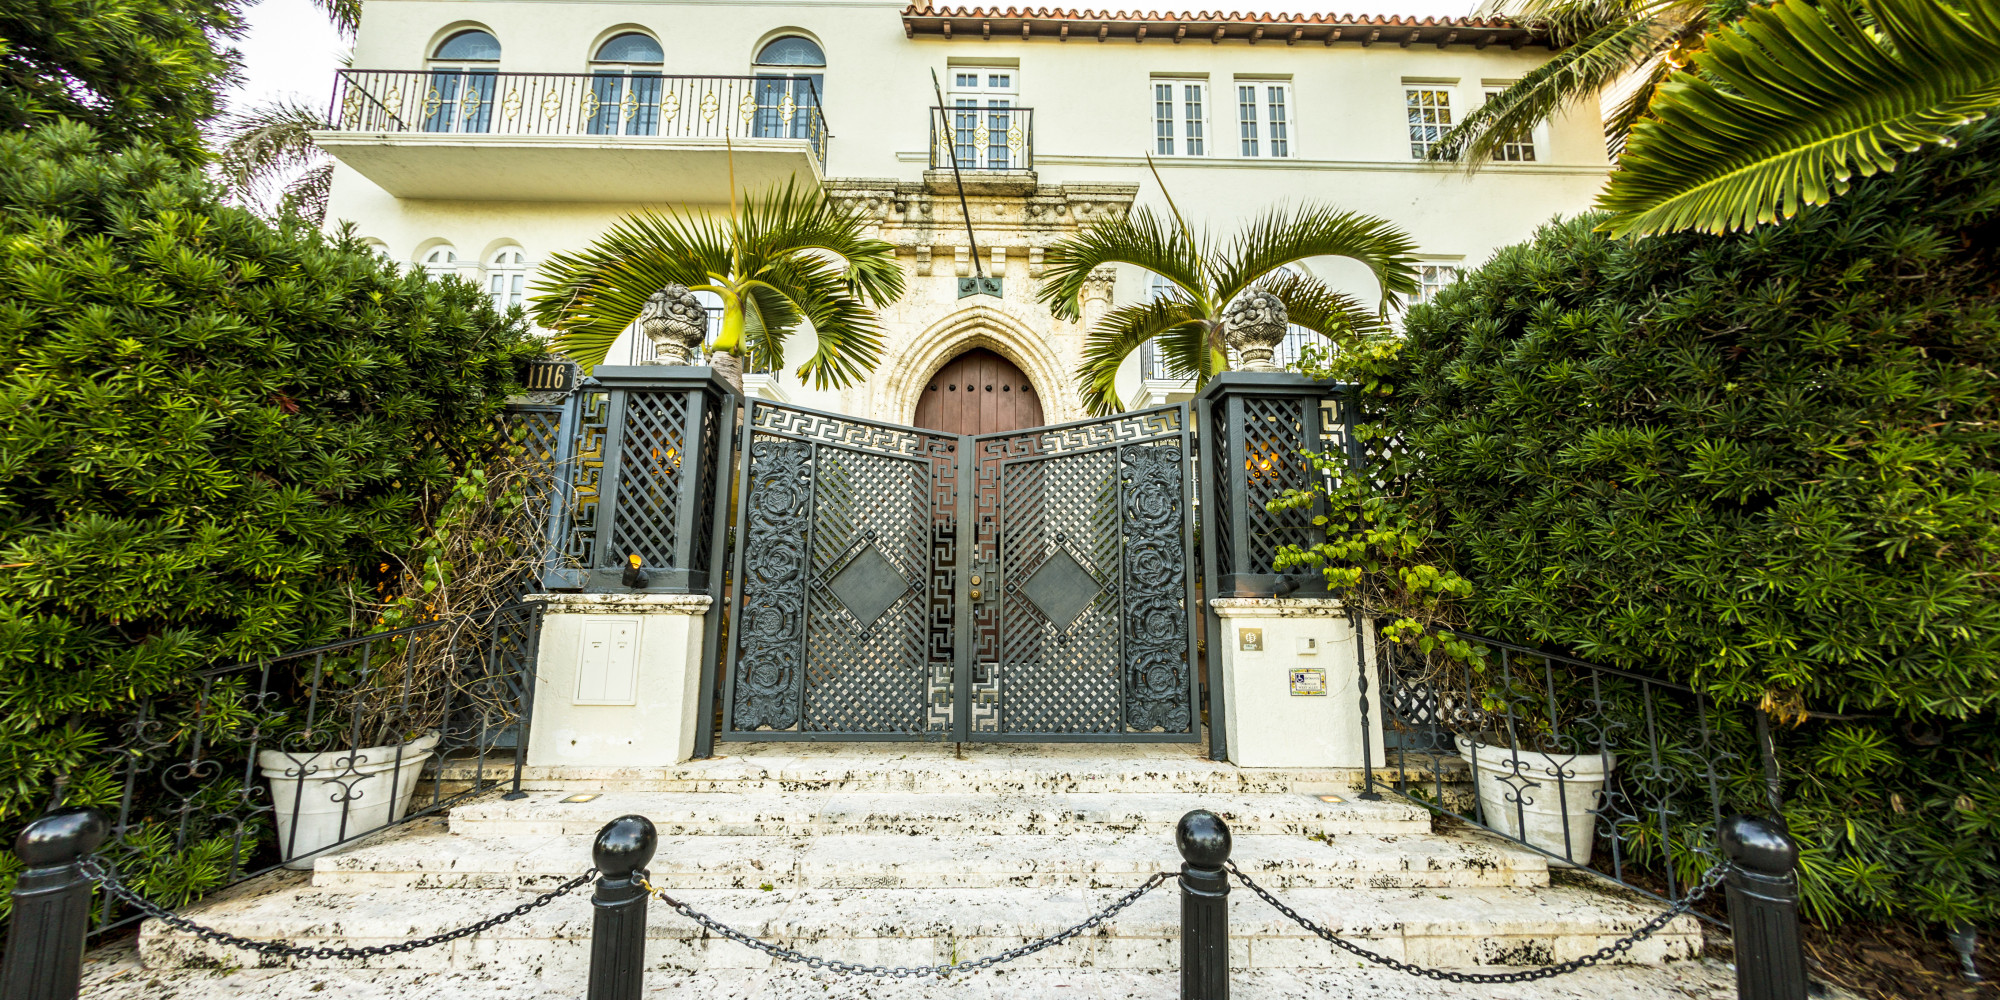 versace mansion 20 amazing facts about gianni versace 39 s casa casuarina heading to auction. Black Bedroom Furniture Sets. Home Design Ideas